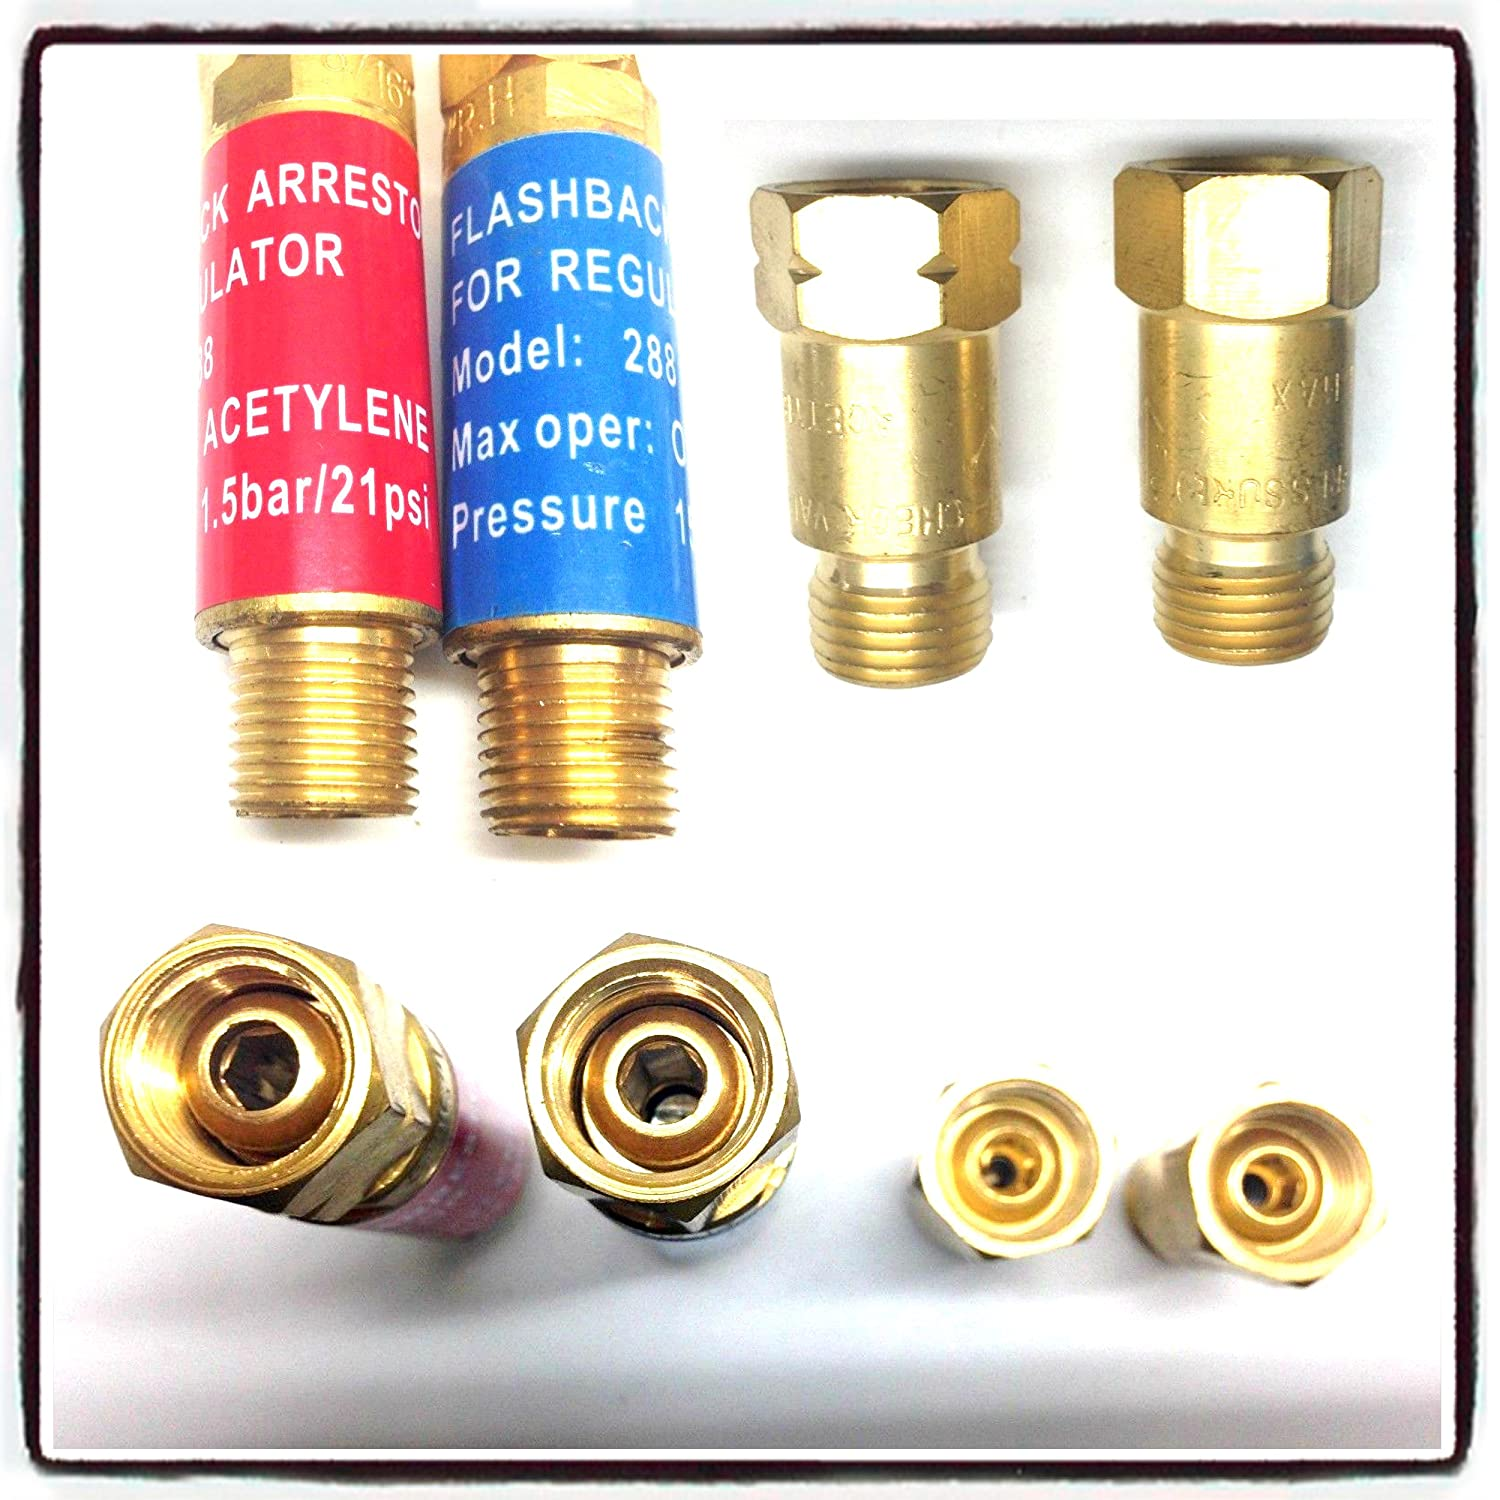 Explosion protection check valve 1 x Acetylene /& 1 x Oxygen Gas Safety